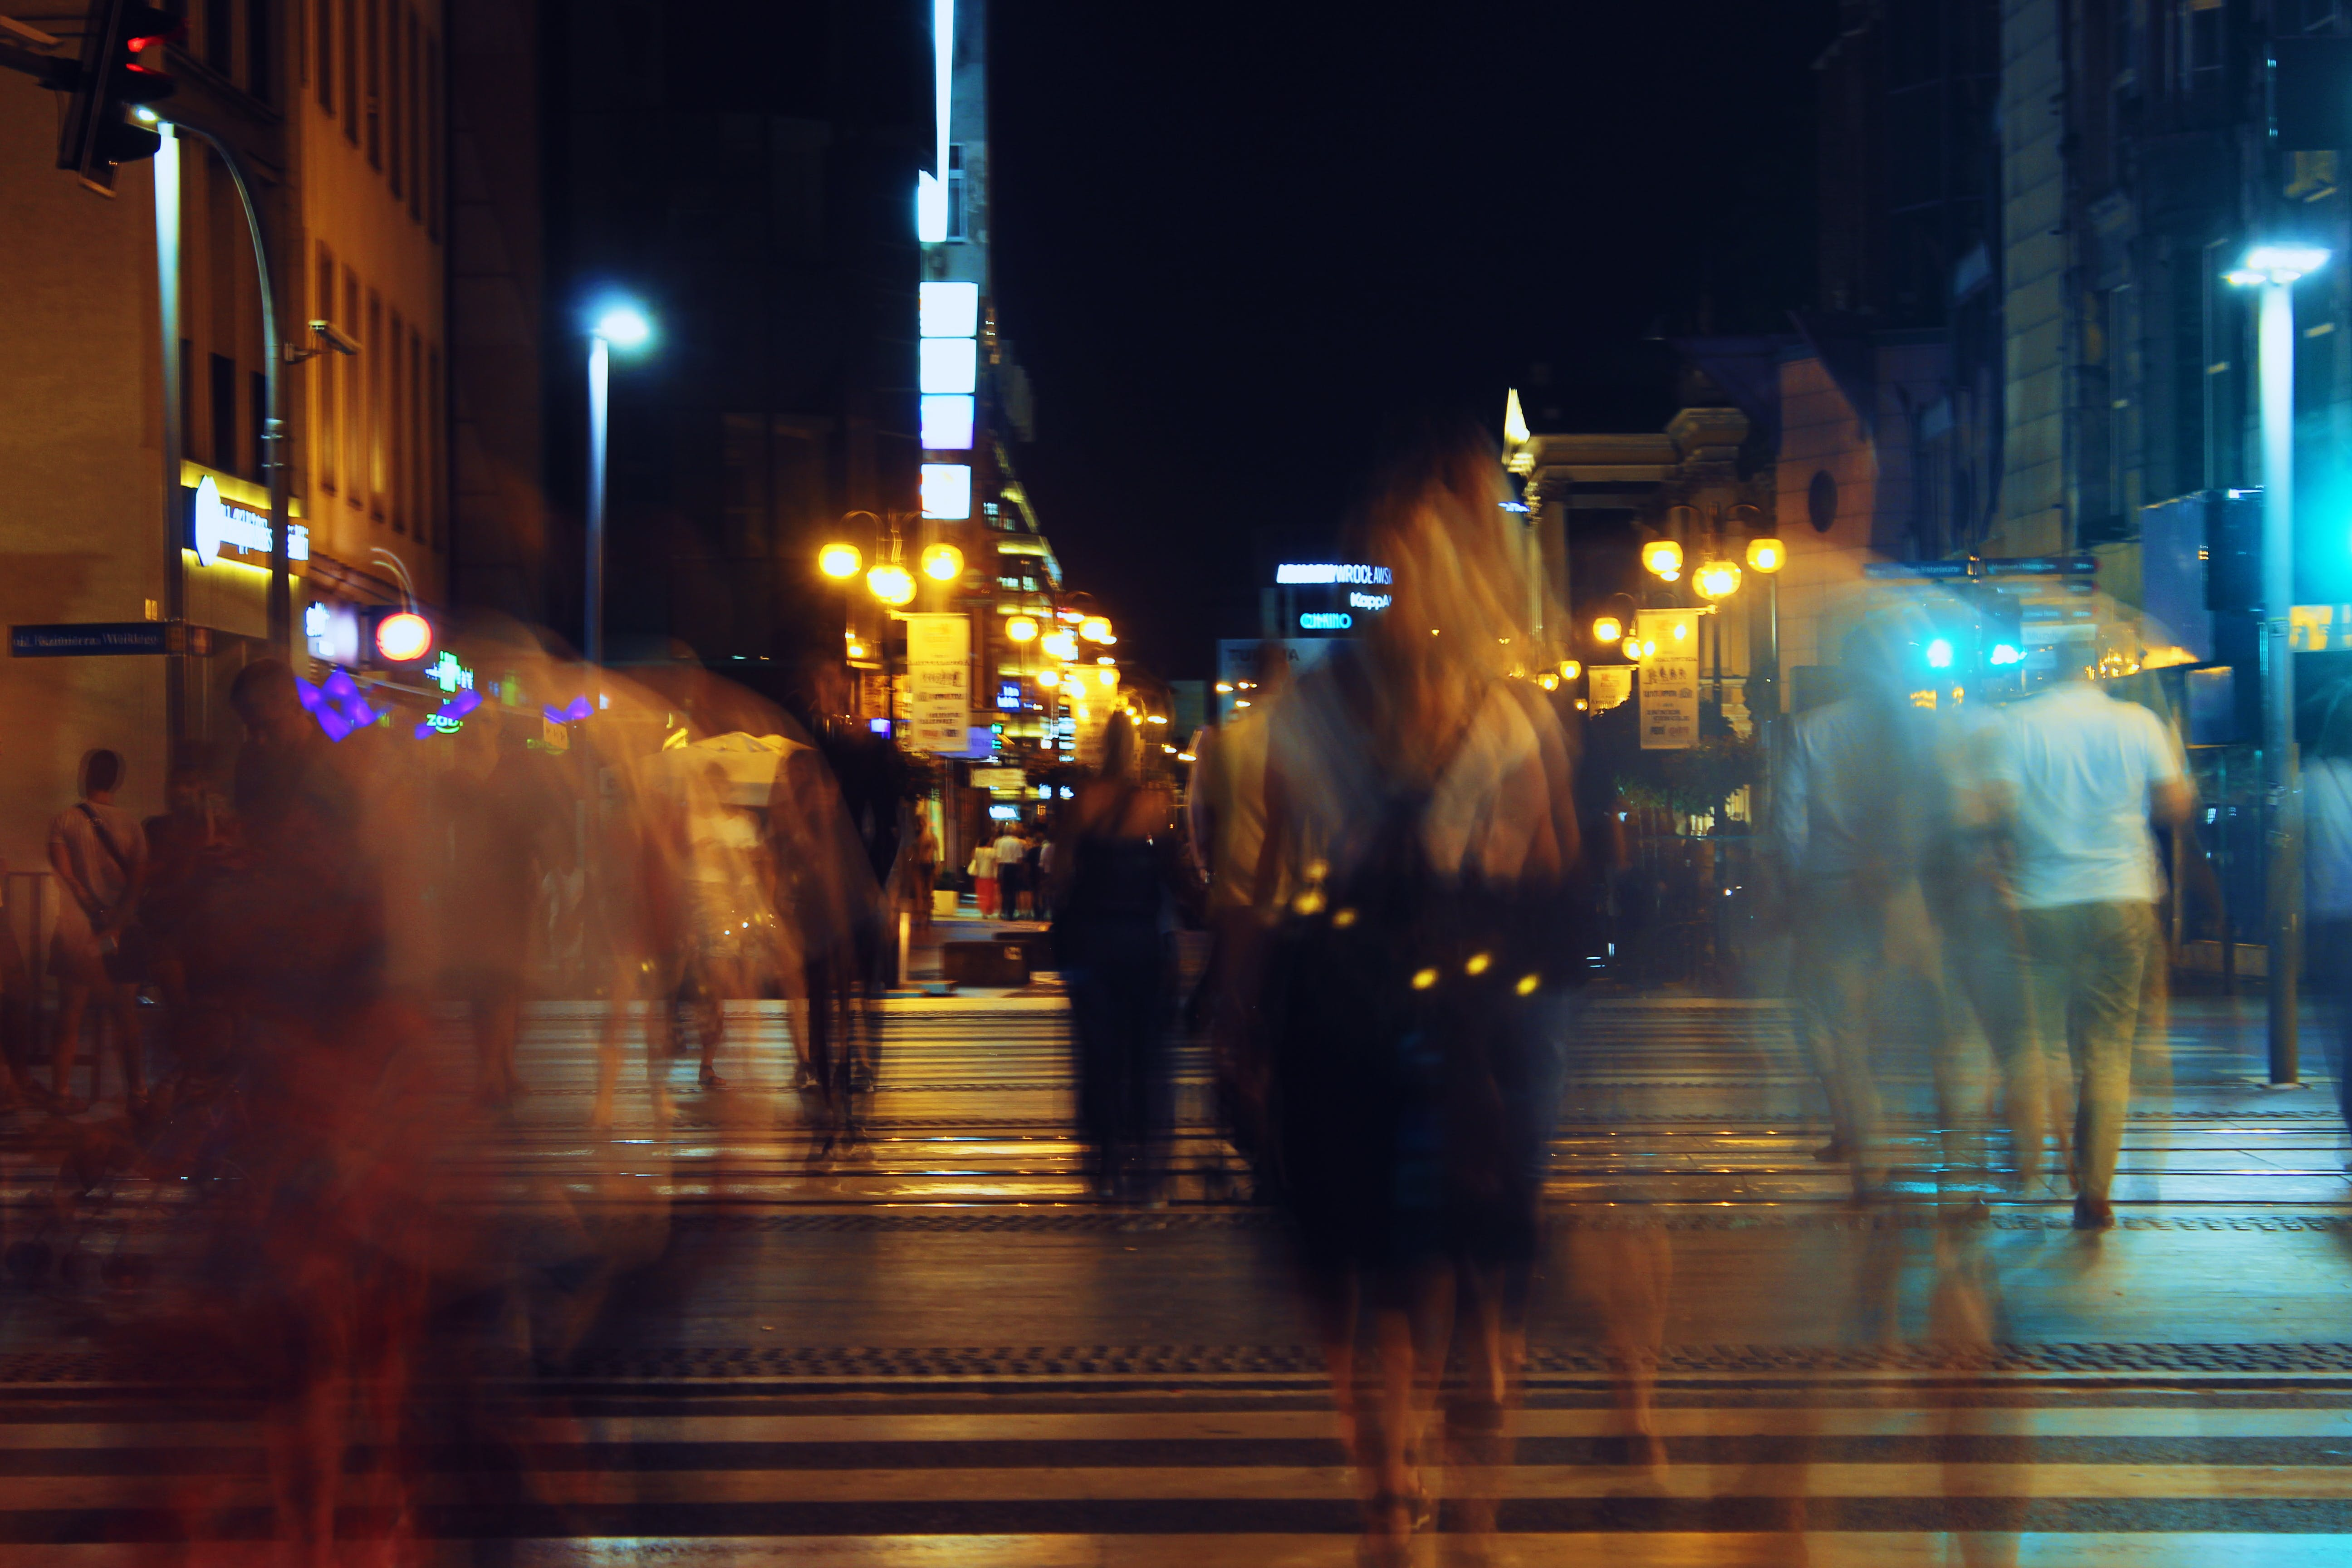 Blurry Photo Of People Walking On Concrete Road